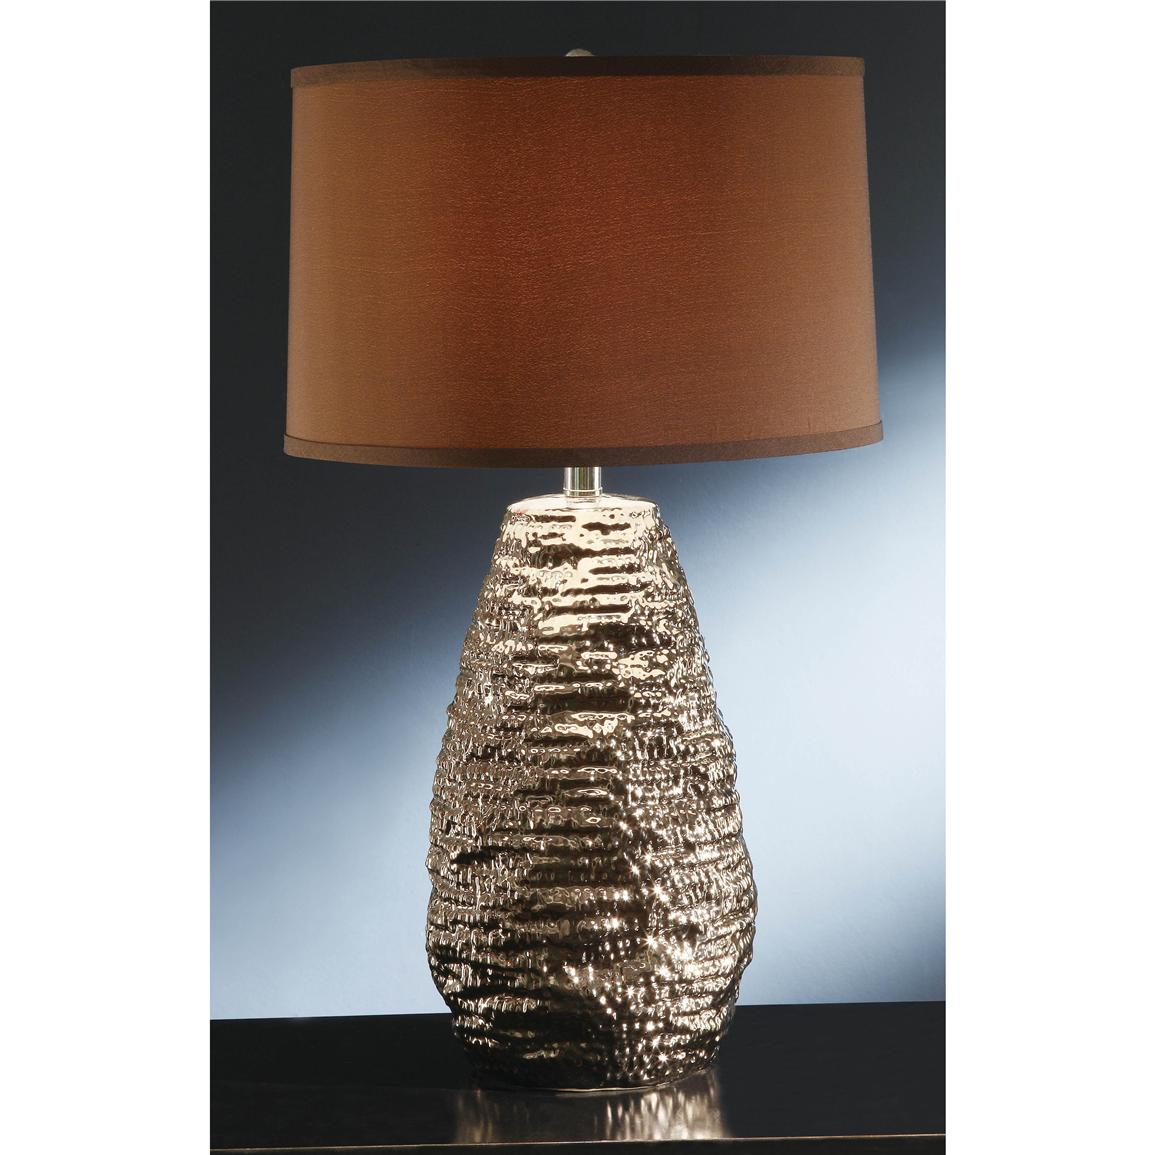 Wrapped Ceramic Table Lamp from Crestview Collection